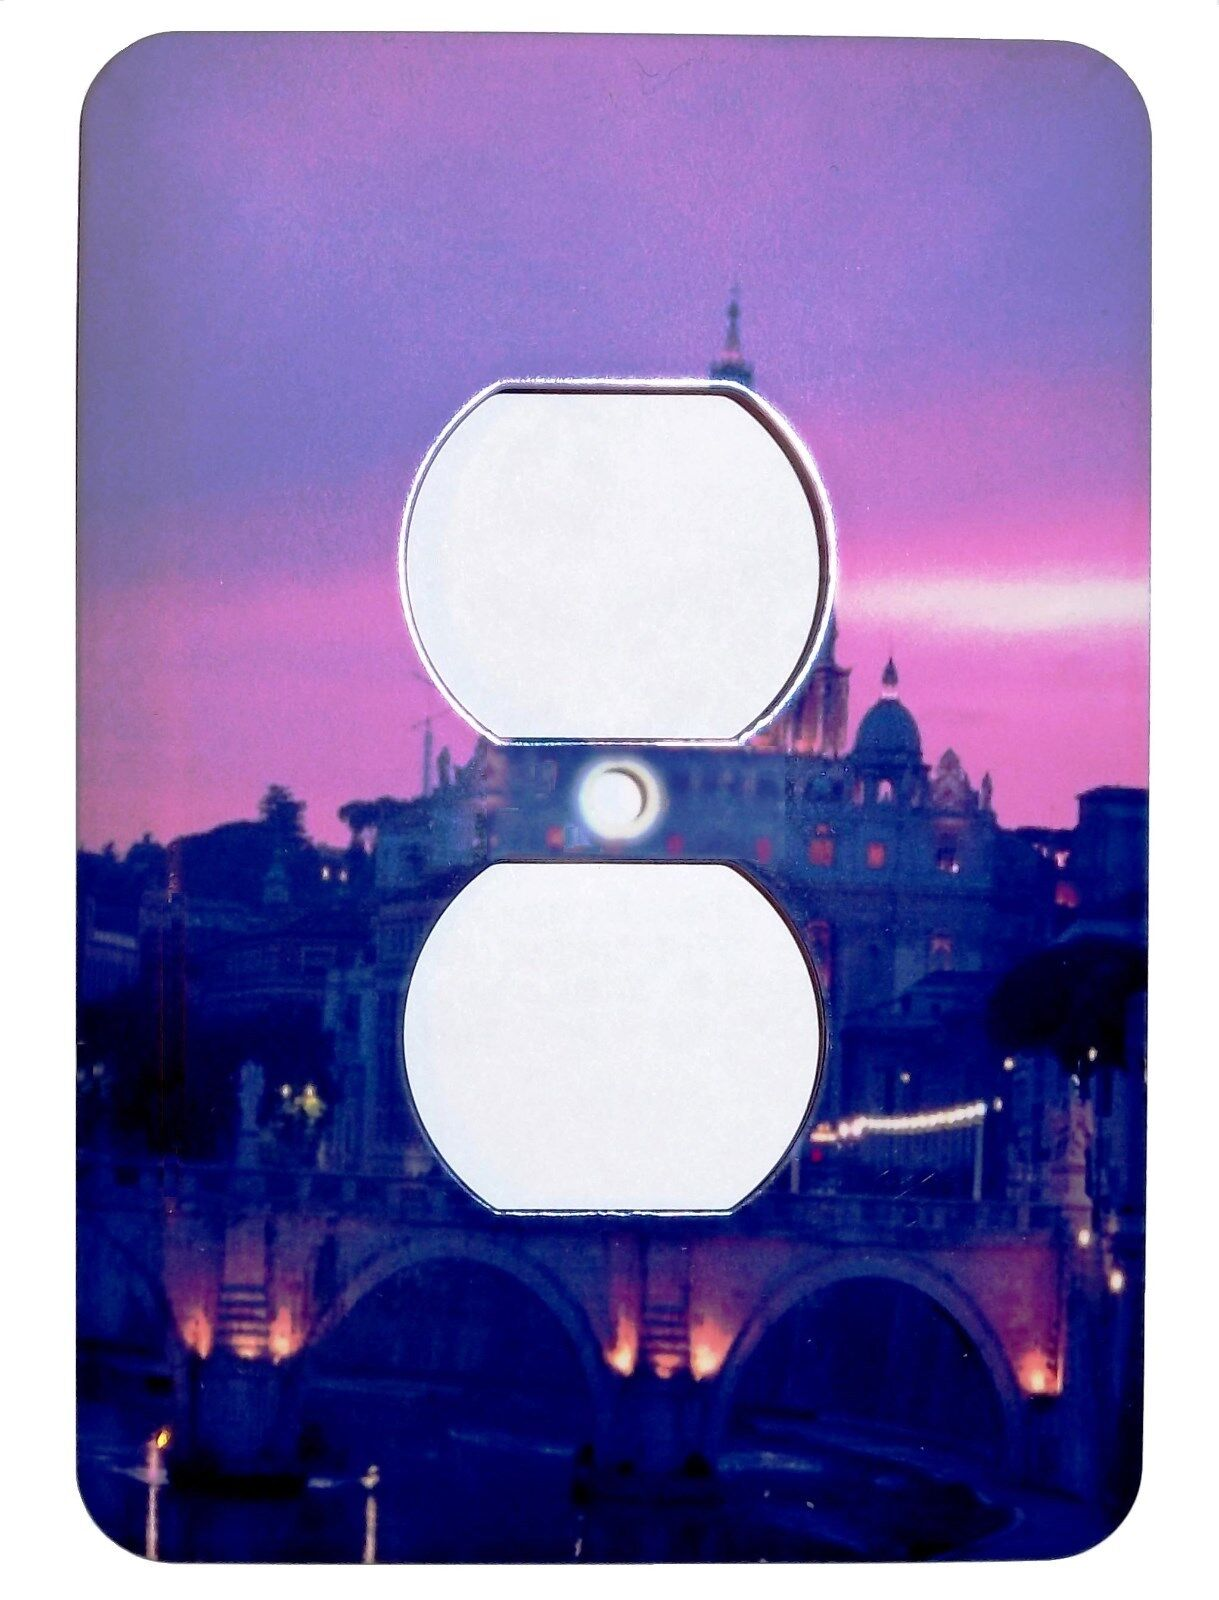 sunset city lights double power plug outlet